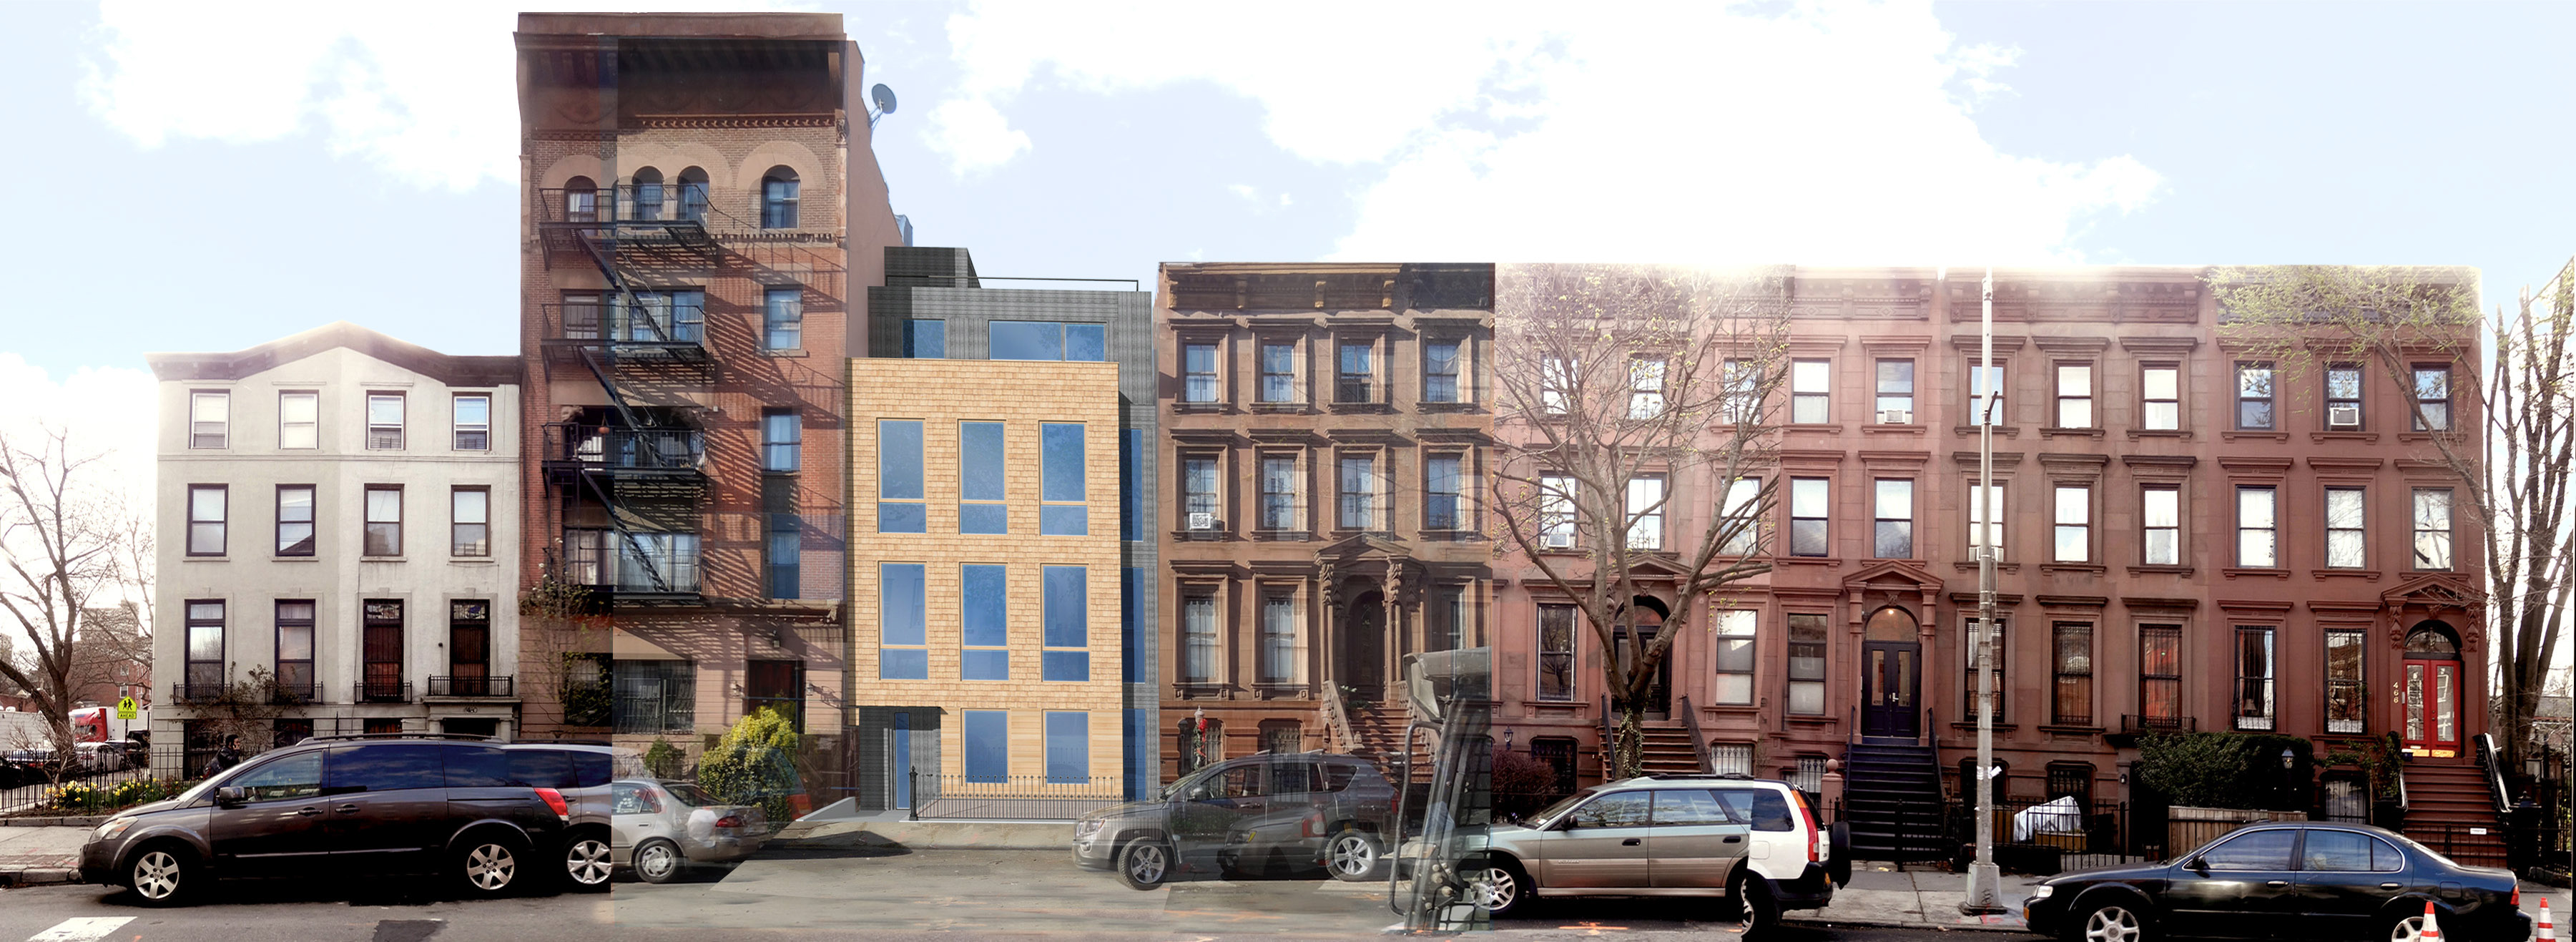 Proposal for 476 Washington Avenue